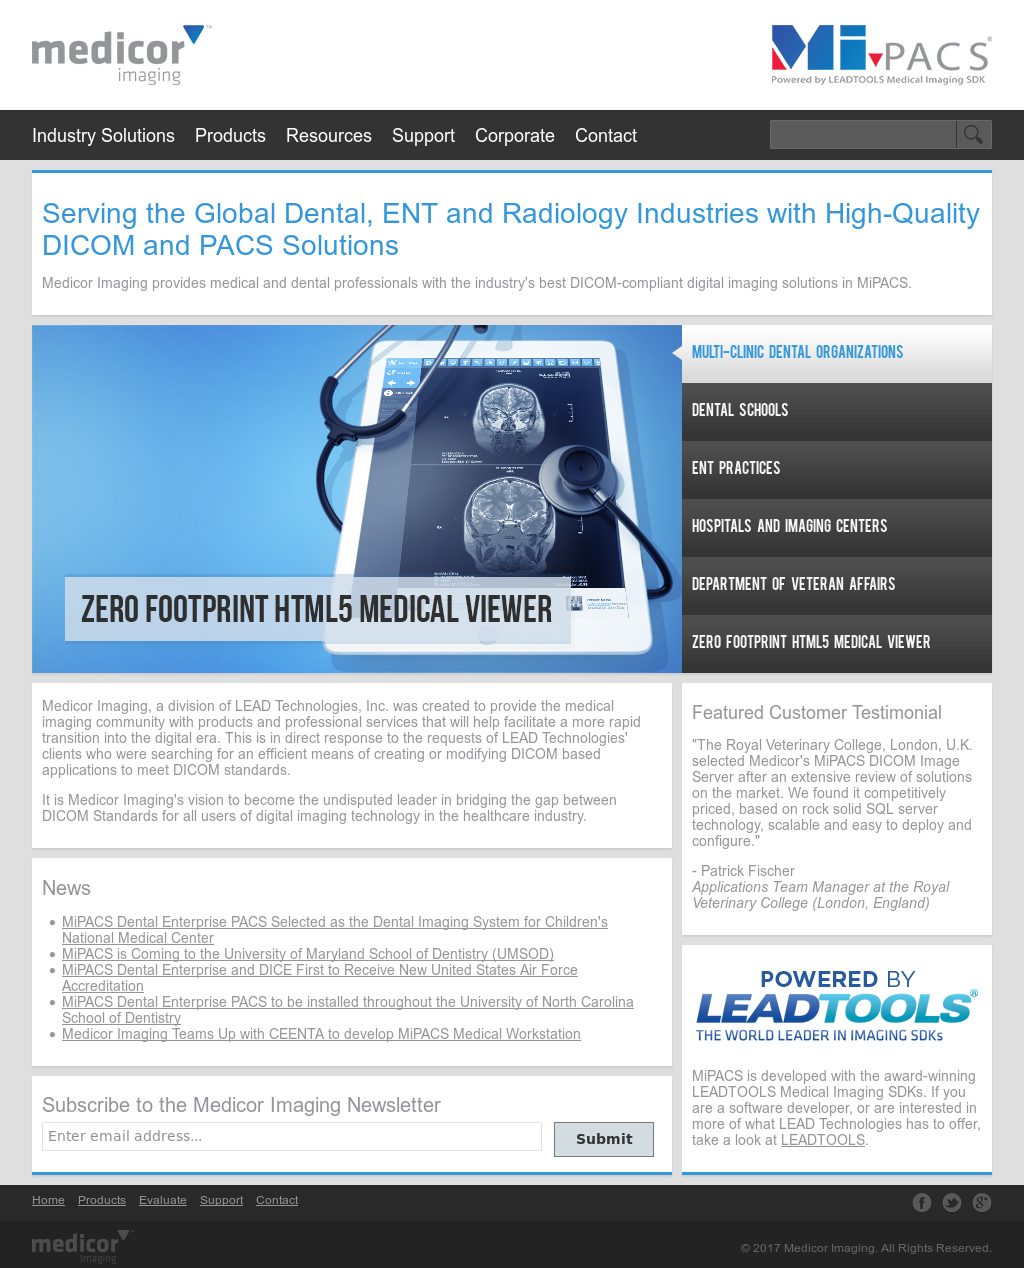 Medicor Imaging Competitors, Revenue and Employees - Owler Company